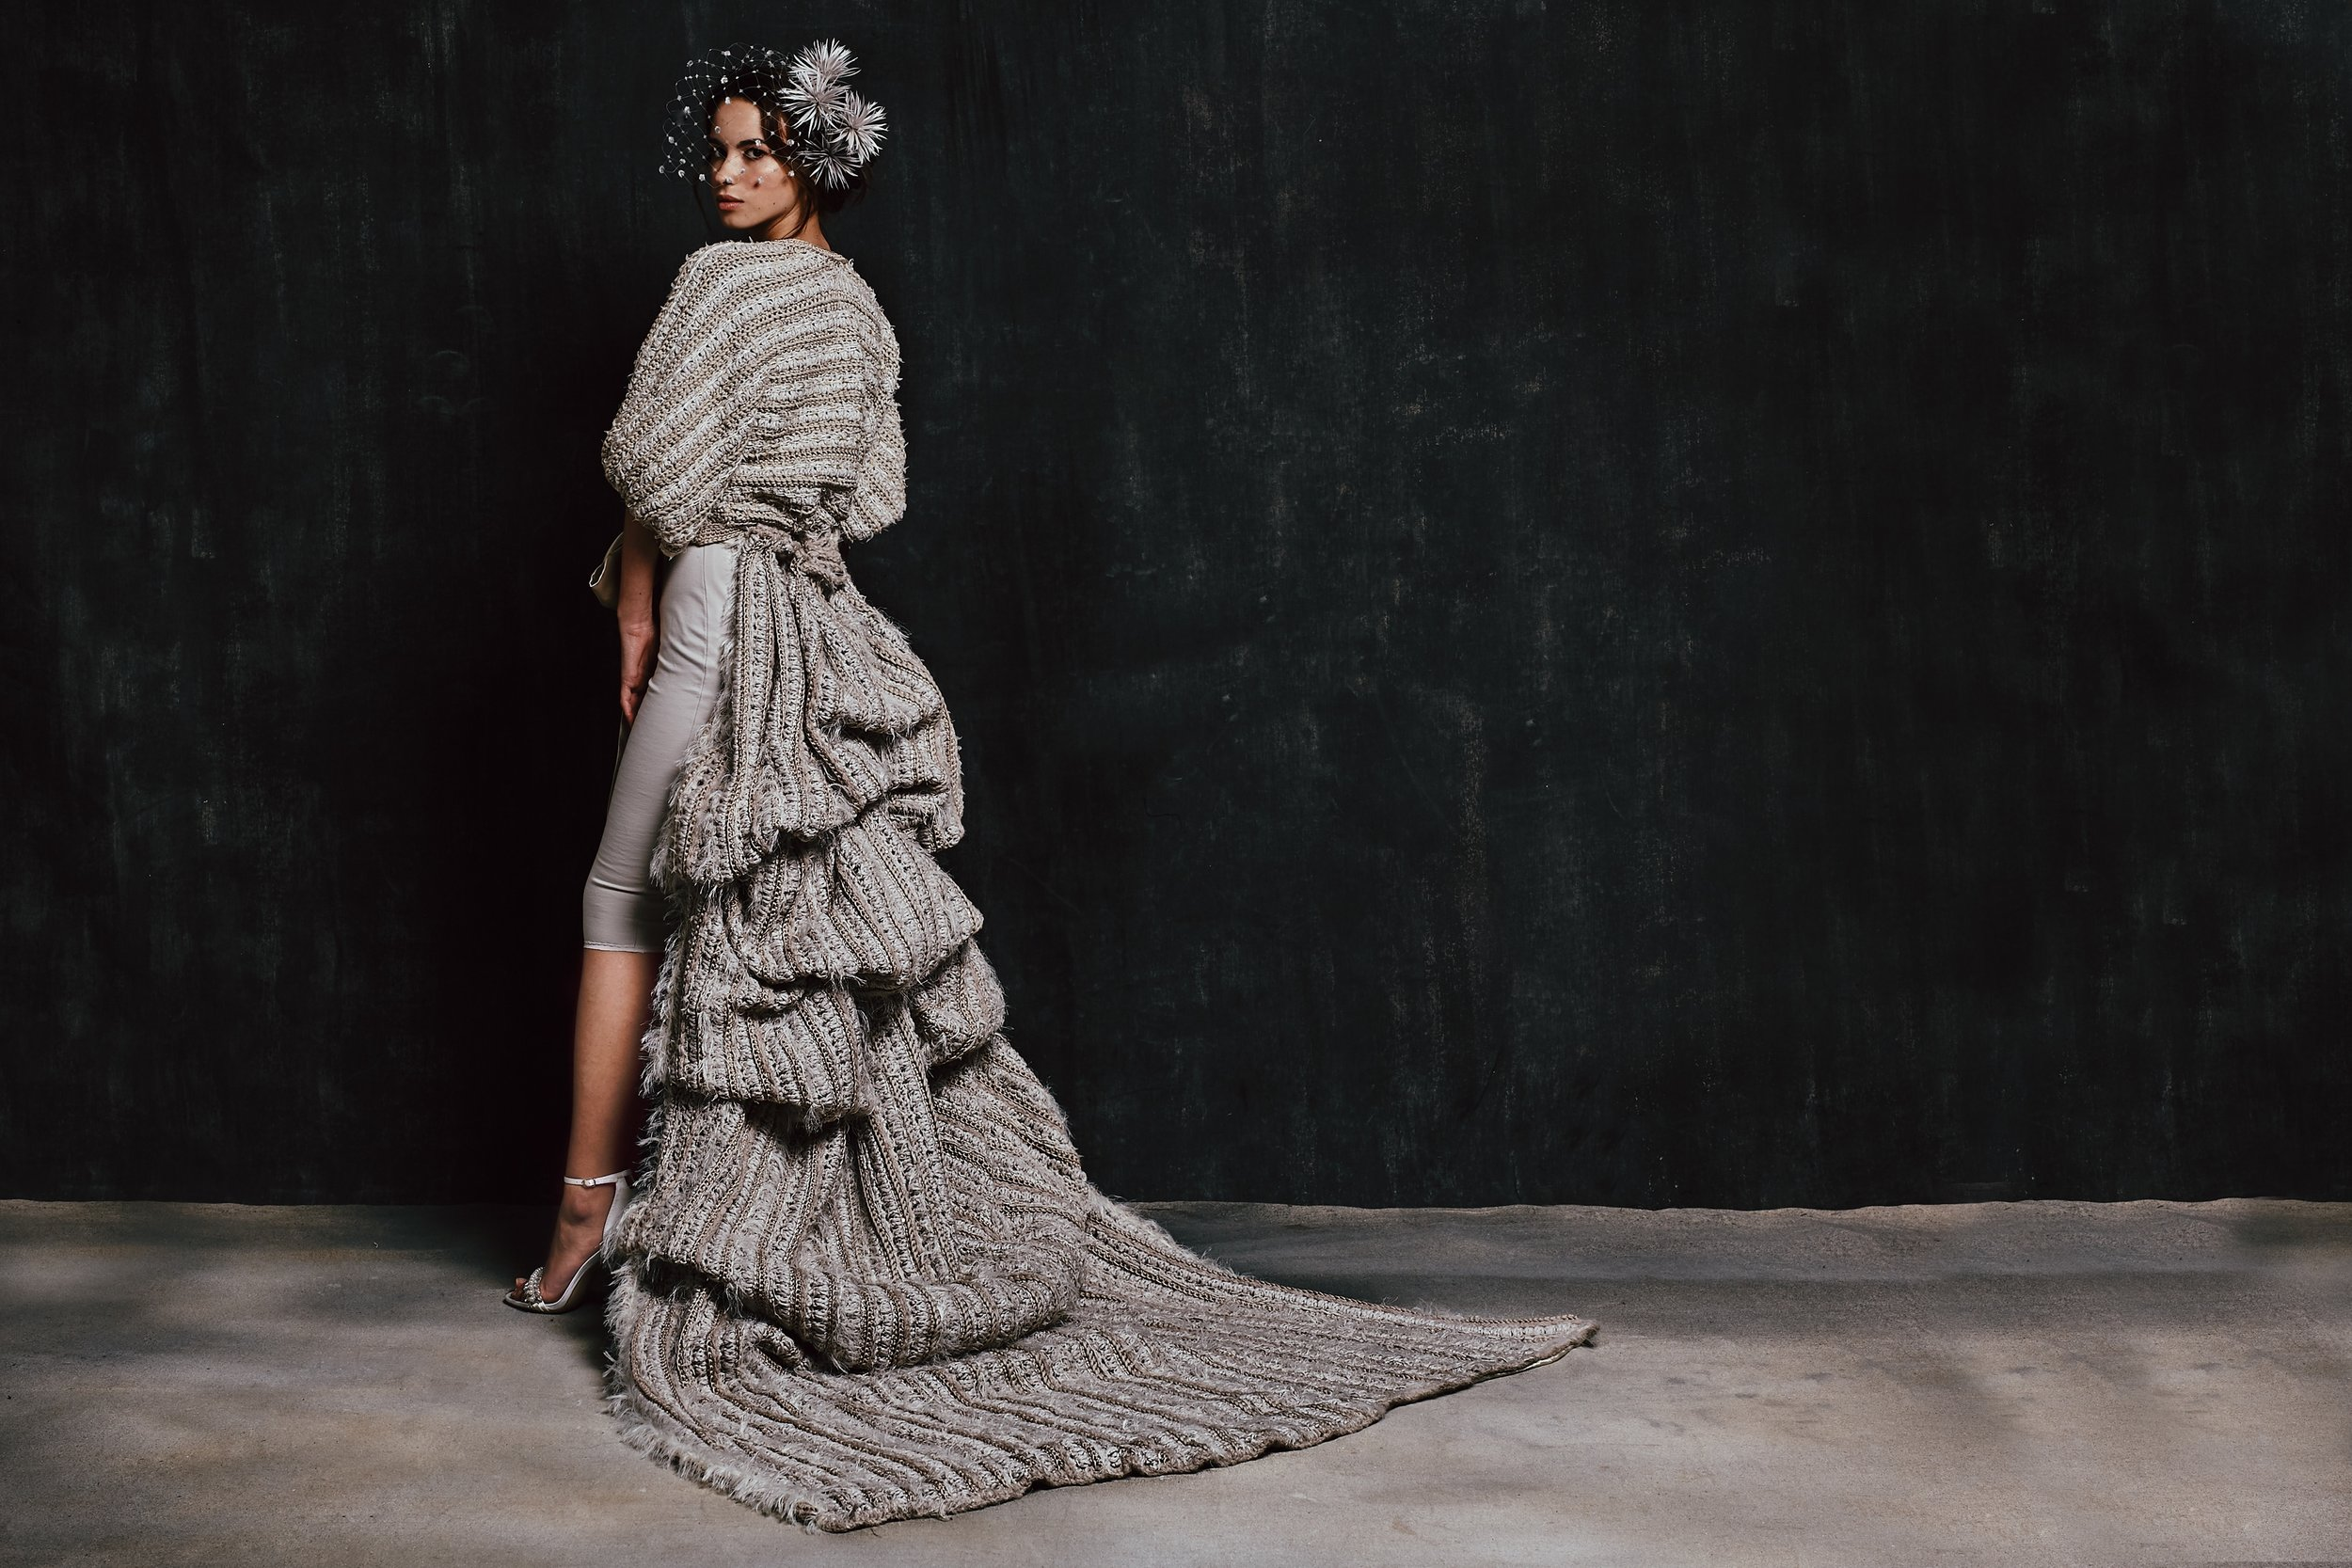 Lee Klabin - Modern couture bridalwear with a conscience. We design hand-made tailored and knitted bridalwear pieces that form a wedding ensemble that can then be disassembled to accompany our brides throughout their